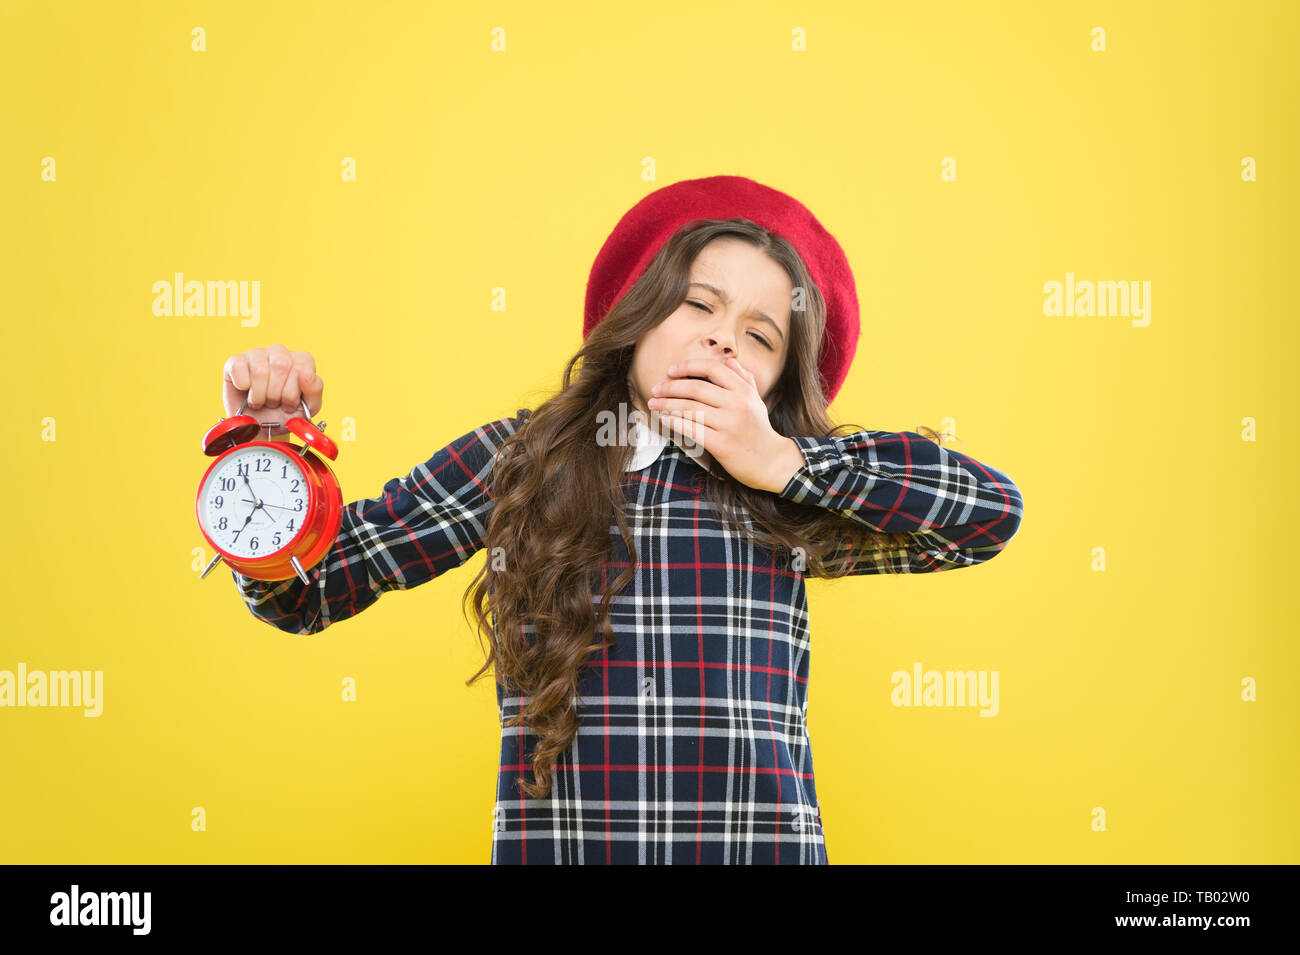 Its time to go to sleep. Sleepy little girl in evening time on yellow background. Yawning small child holding alarm clock. Late time. Break time, refresh yourself. - Stock Image